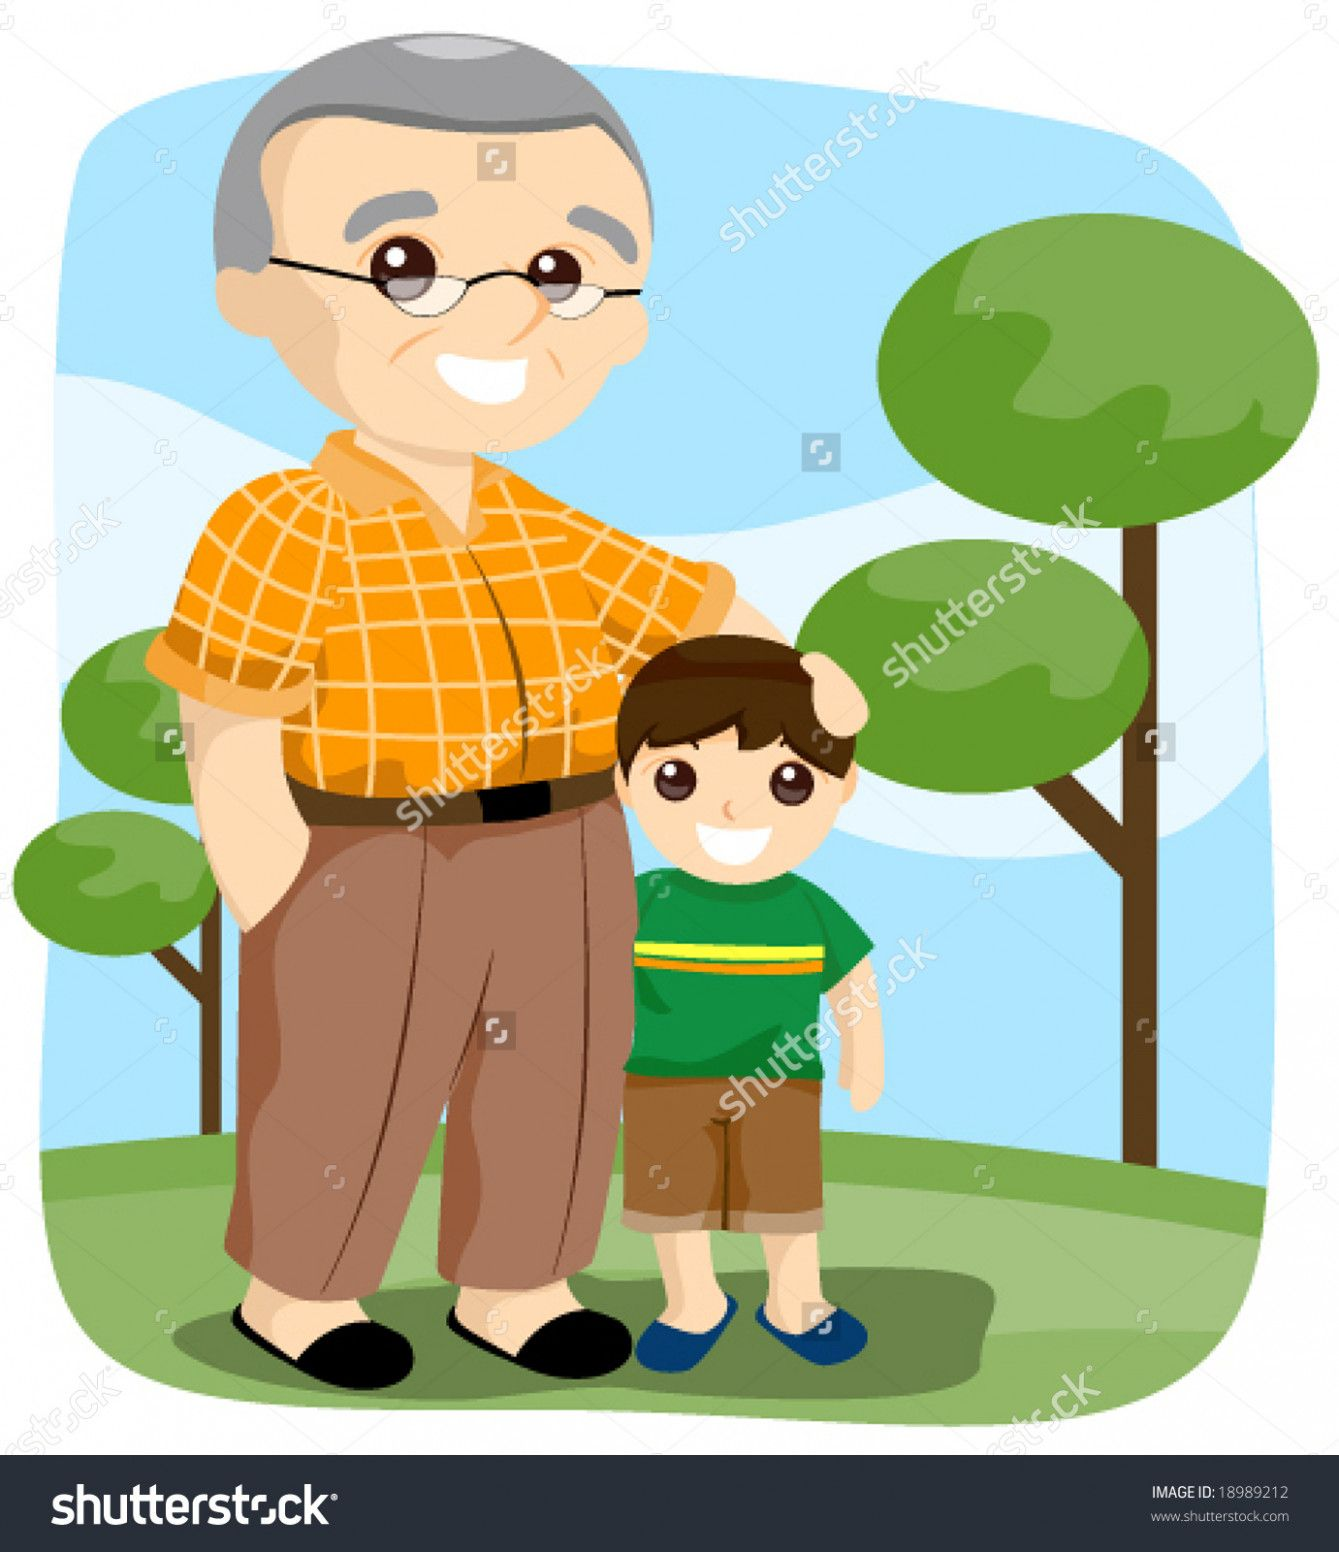 18 collection of grandpa and granddaughter clipart high quality.